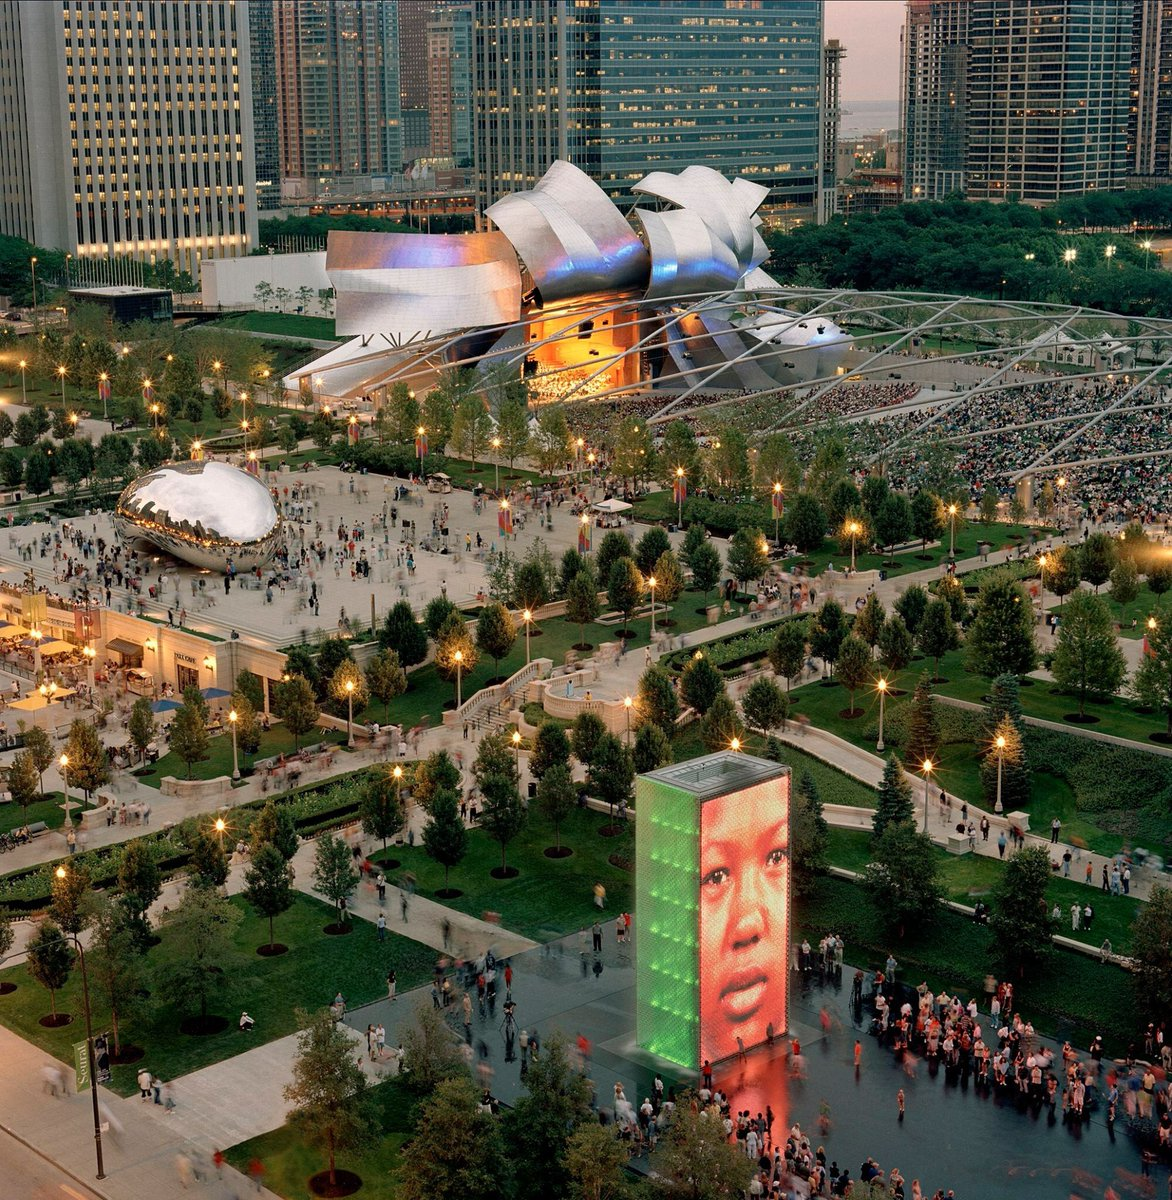 Millennium Park turns 12. Happy Birthday to us! (Photo: Terry Evans – Millennium Park, Opening Night, July 16, 2004) https://t.co/cb7okfVhFw